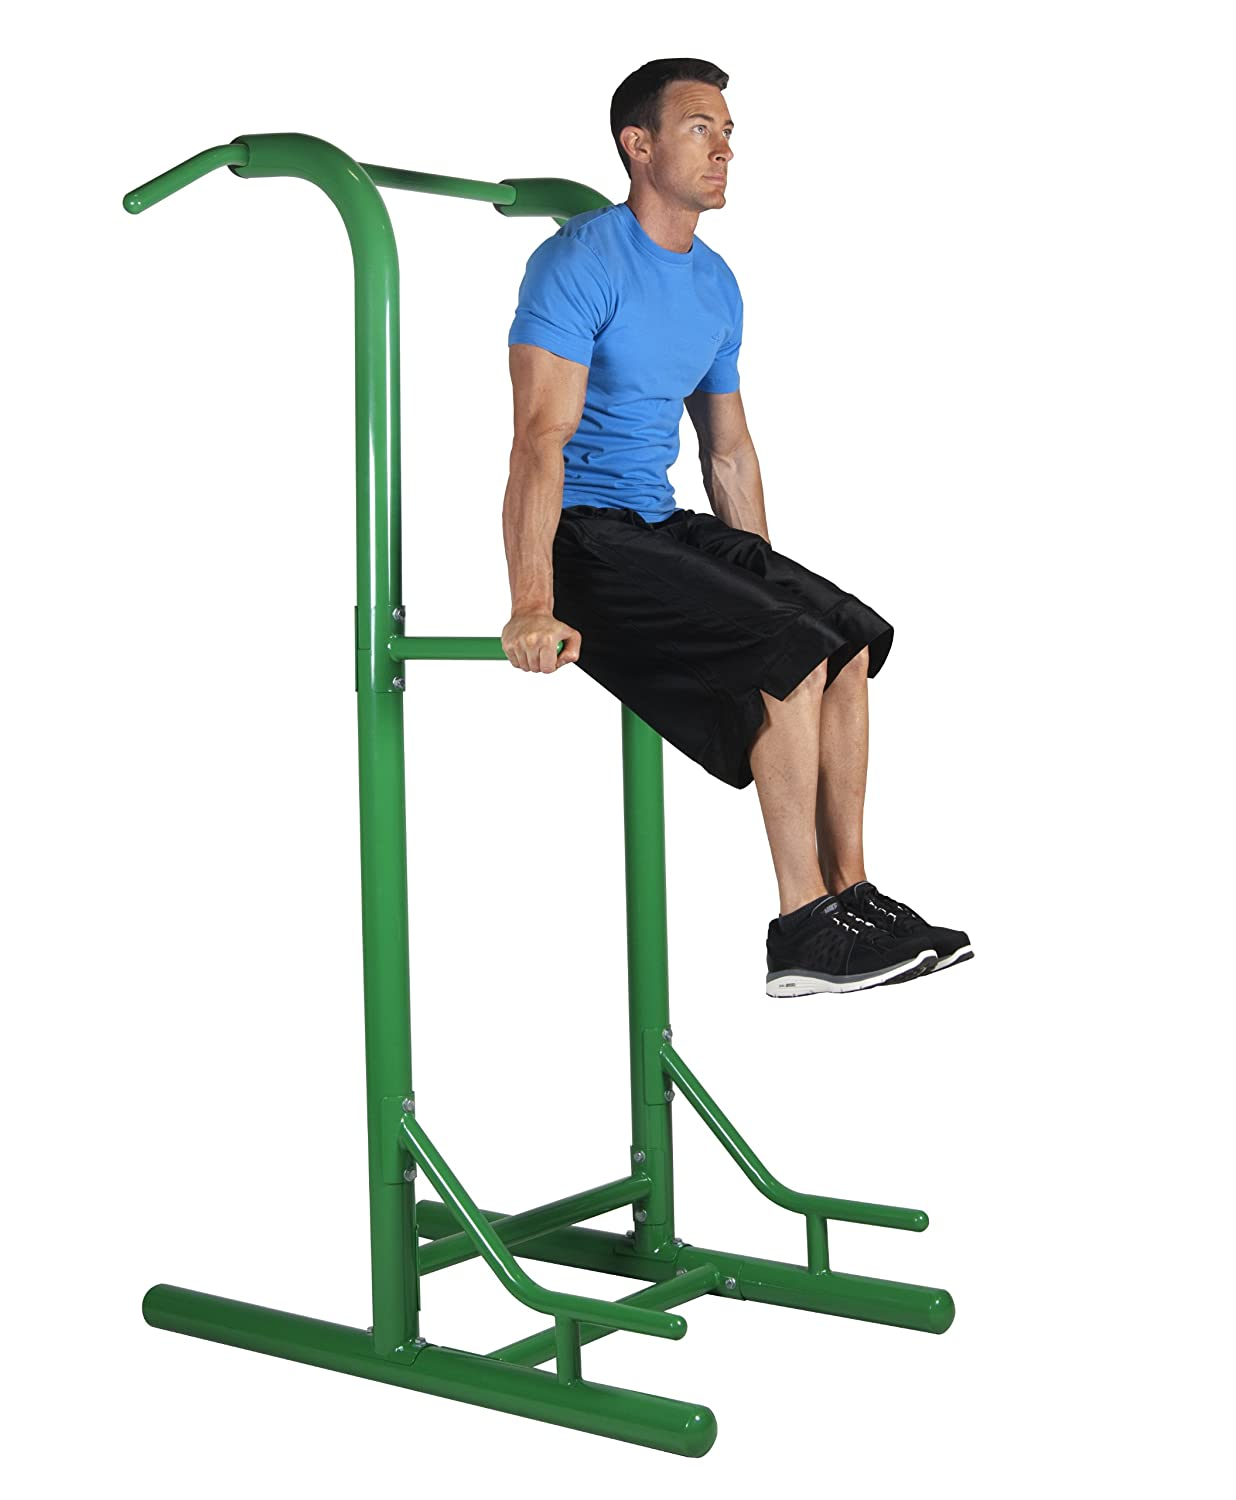 Amazon.com : Stamina 65-1460 Outdoor Fitness Power Tower : Home Gyms ...